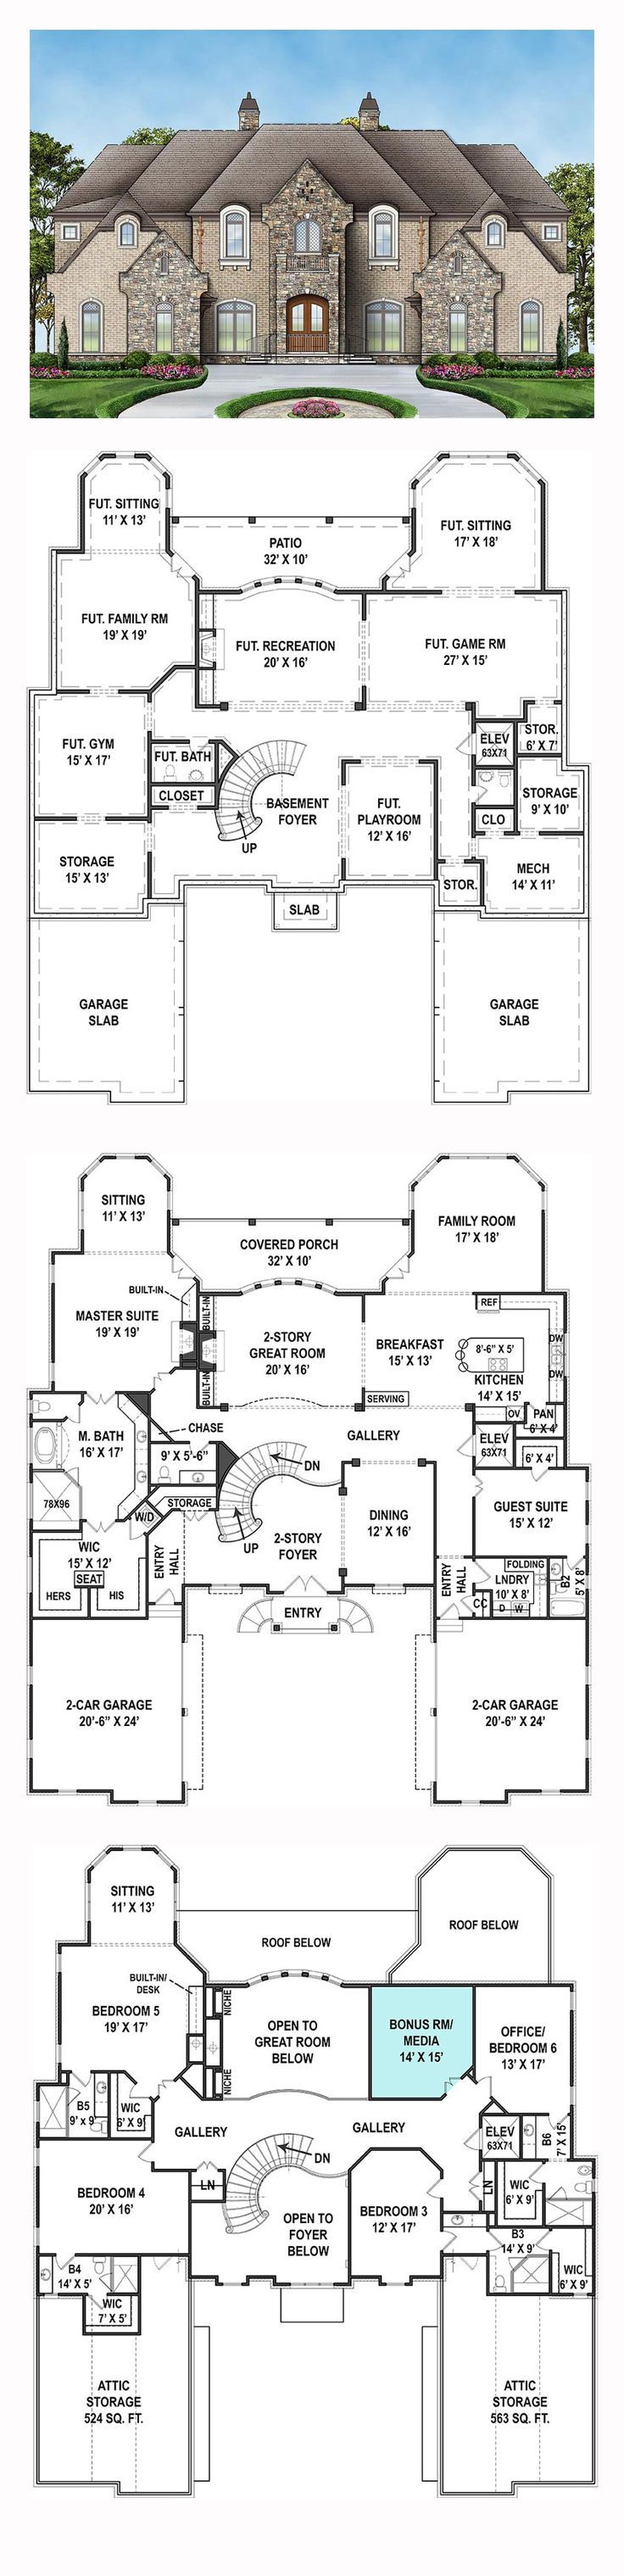 Best 25 new house plans ideas on pinterest 5 bedroom for 6 bedroom house plans